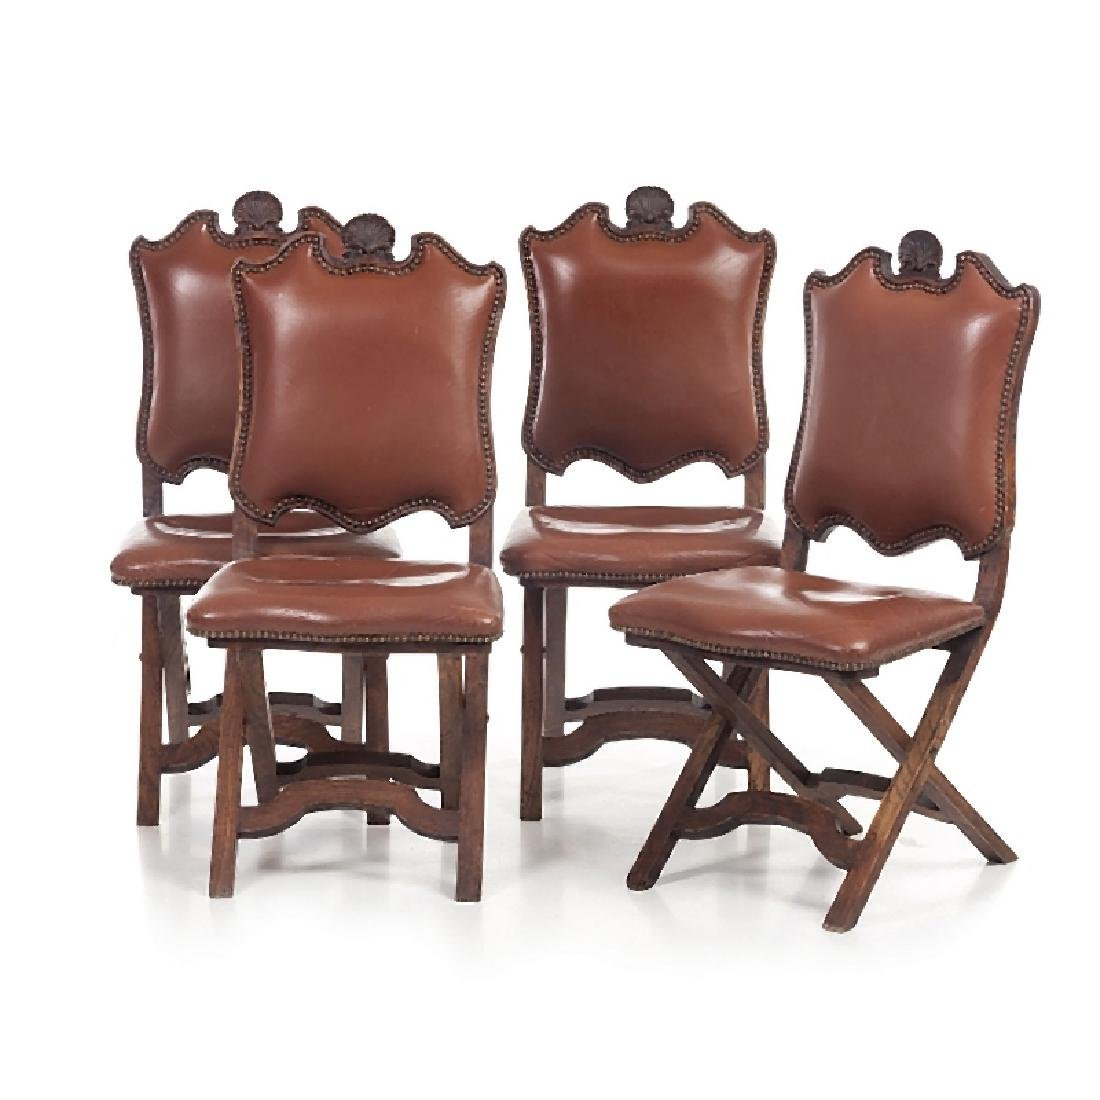 Eight scissor chairs in leather